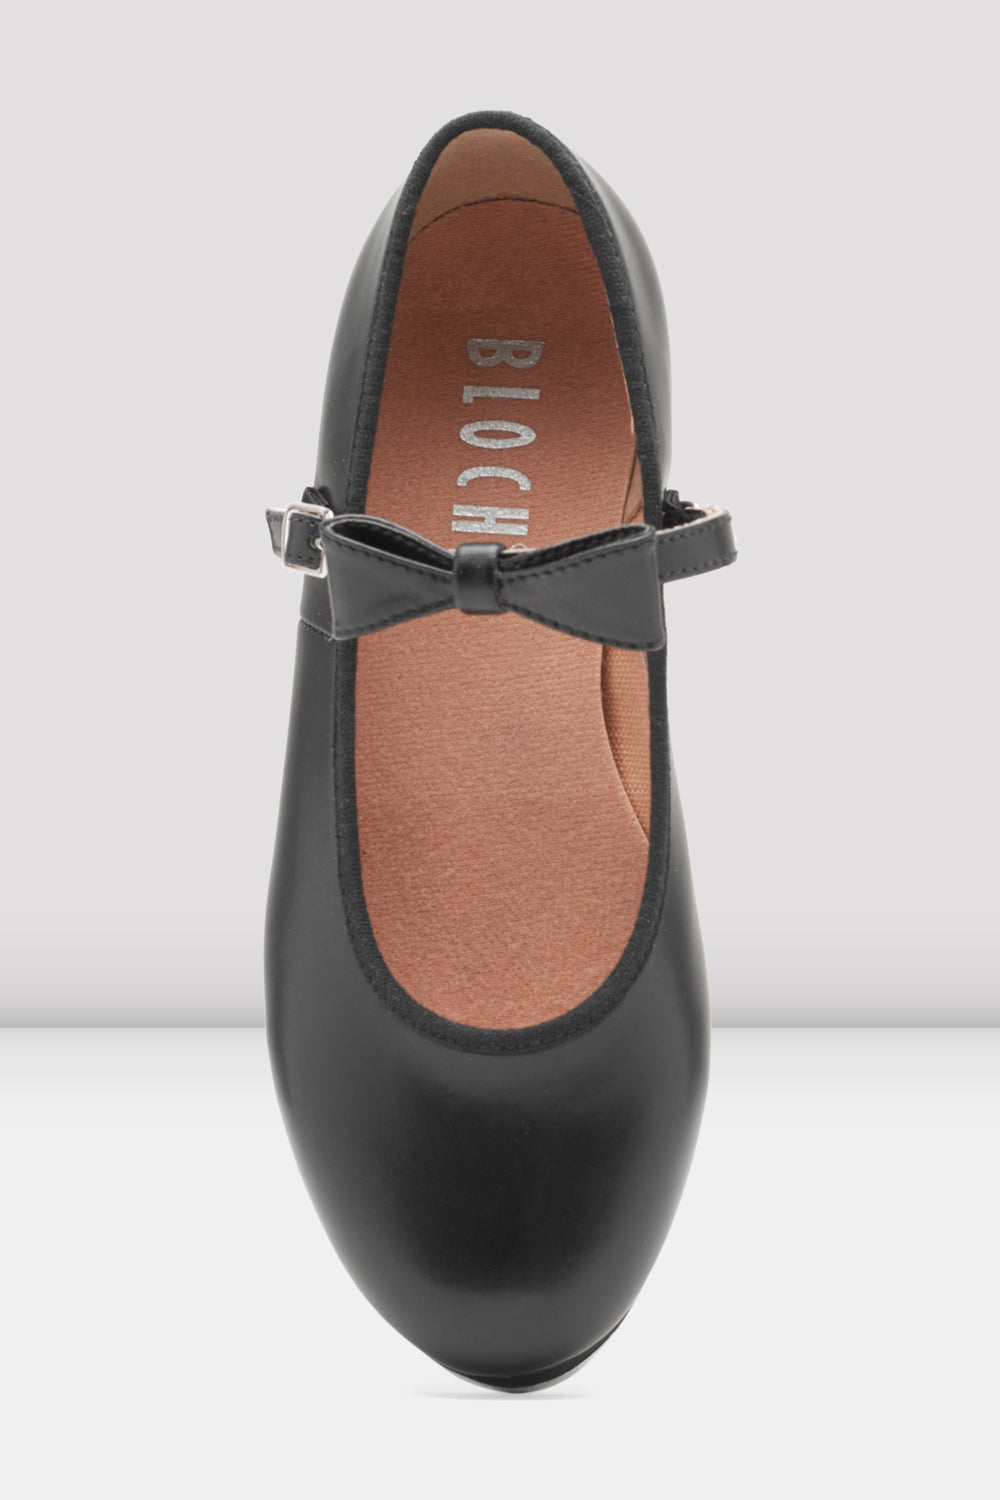 size UK 4.5 black Bloch merry jane tap shoes heel and toe taps